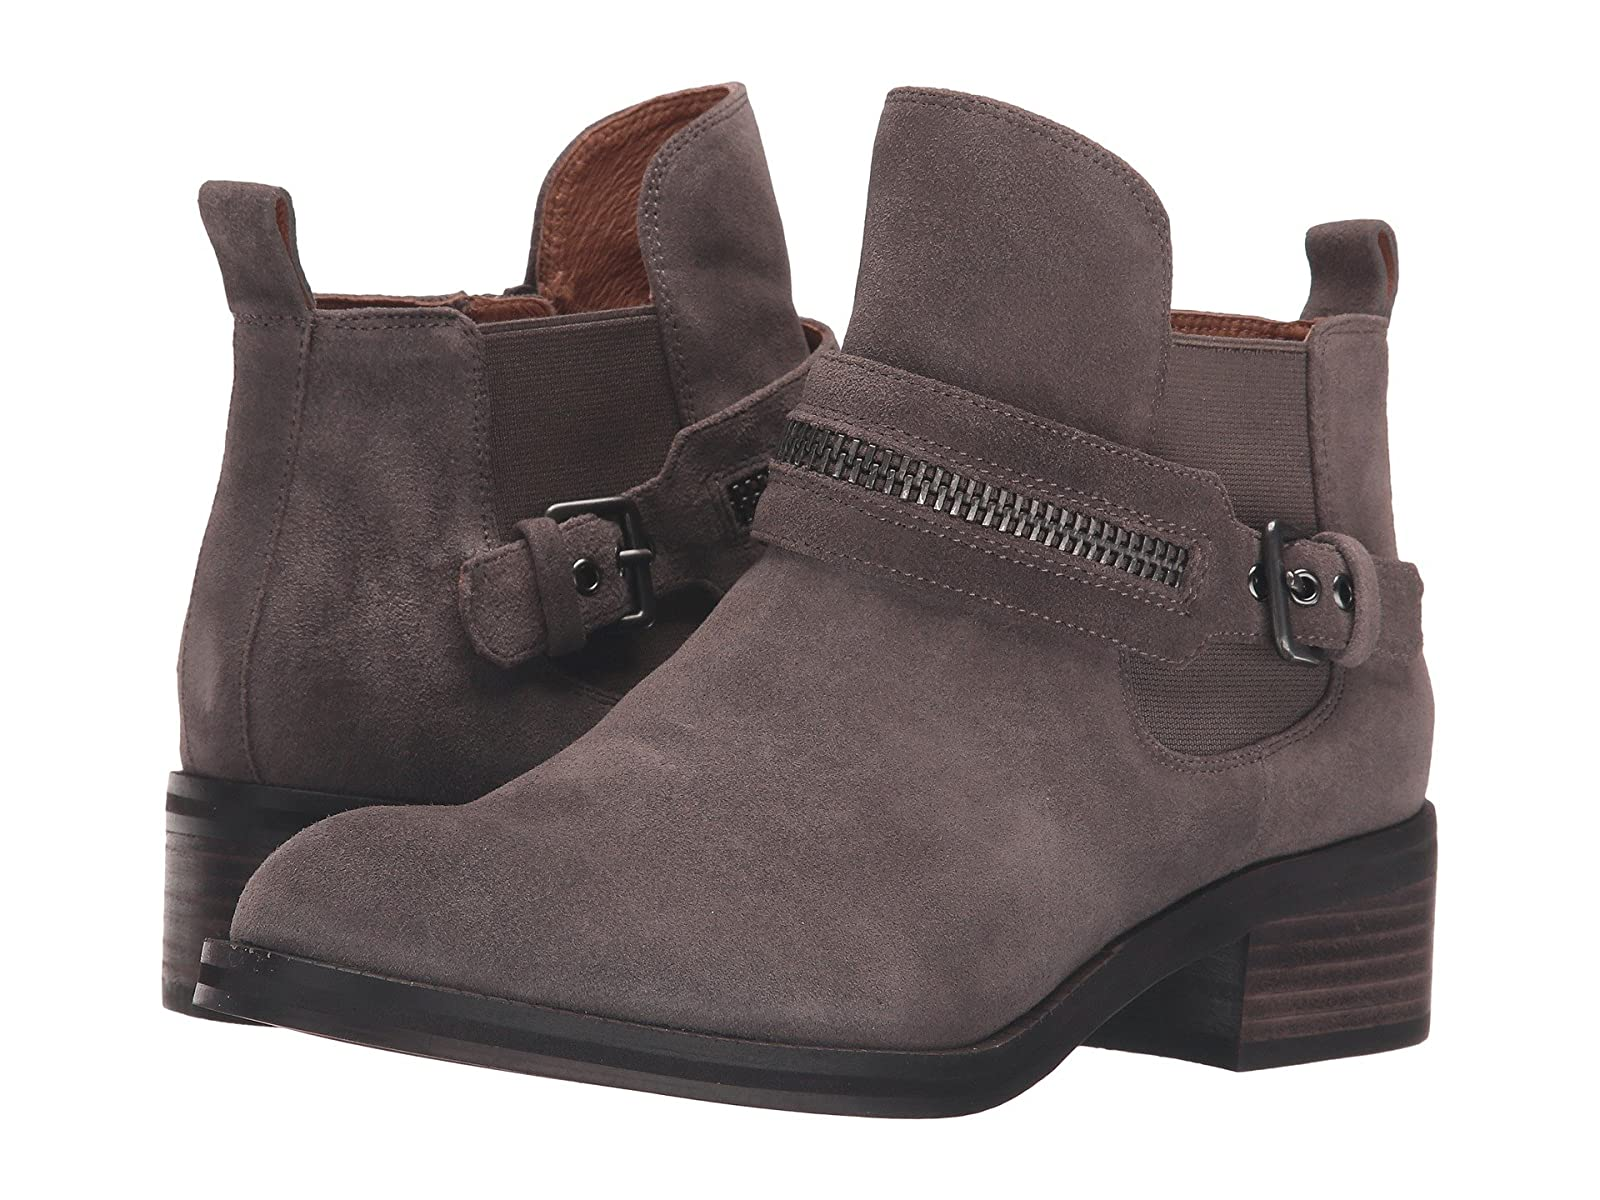 Gentle Souls by Kenneth Cole PennyCheap and distinctive eye-catching shoes